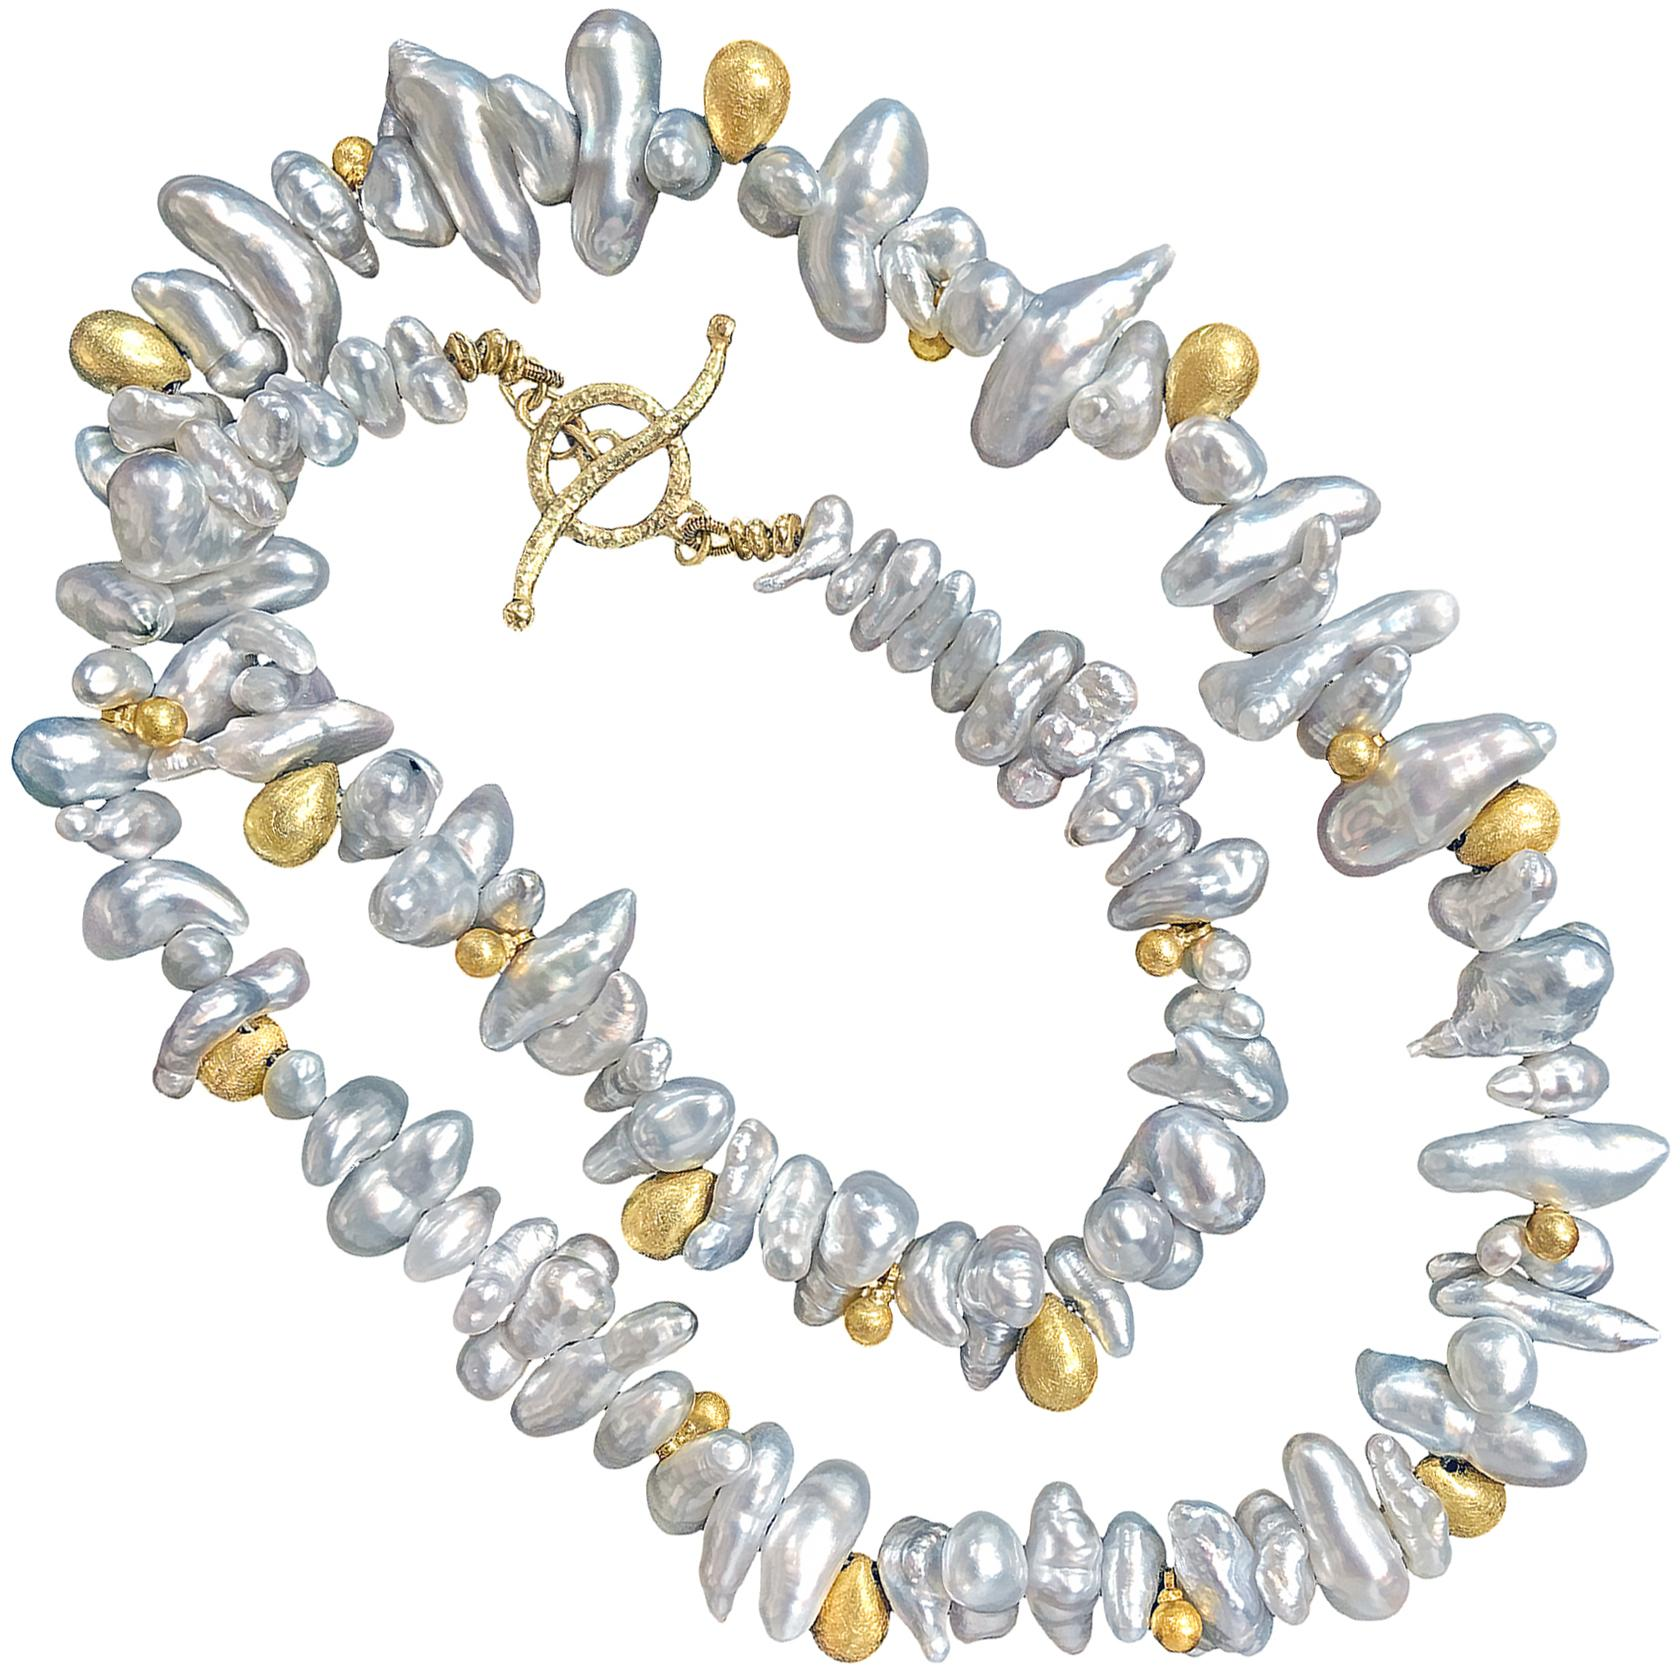 Barbara Heinrich One of a Kind Silver Keshi Pearl Gold Drops Handmade Necklace